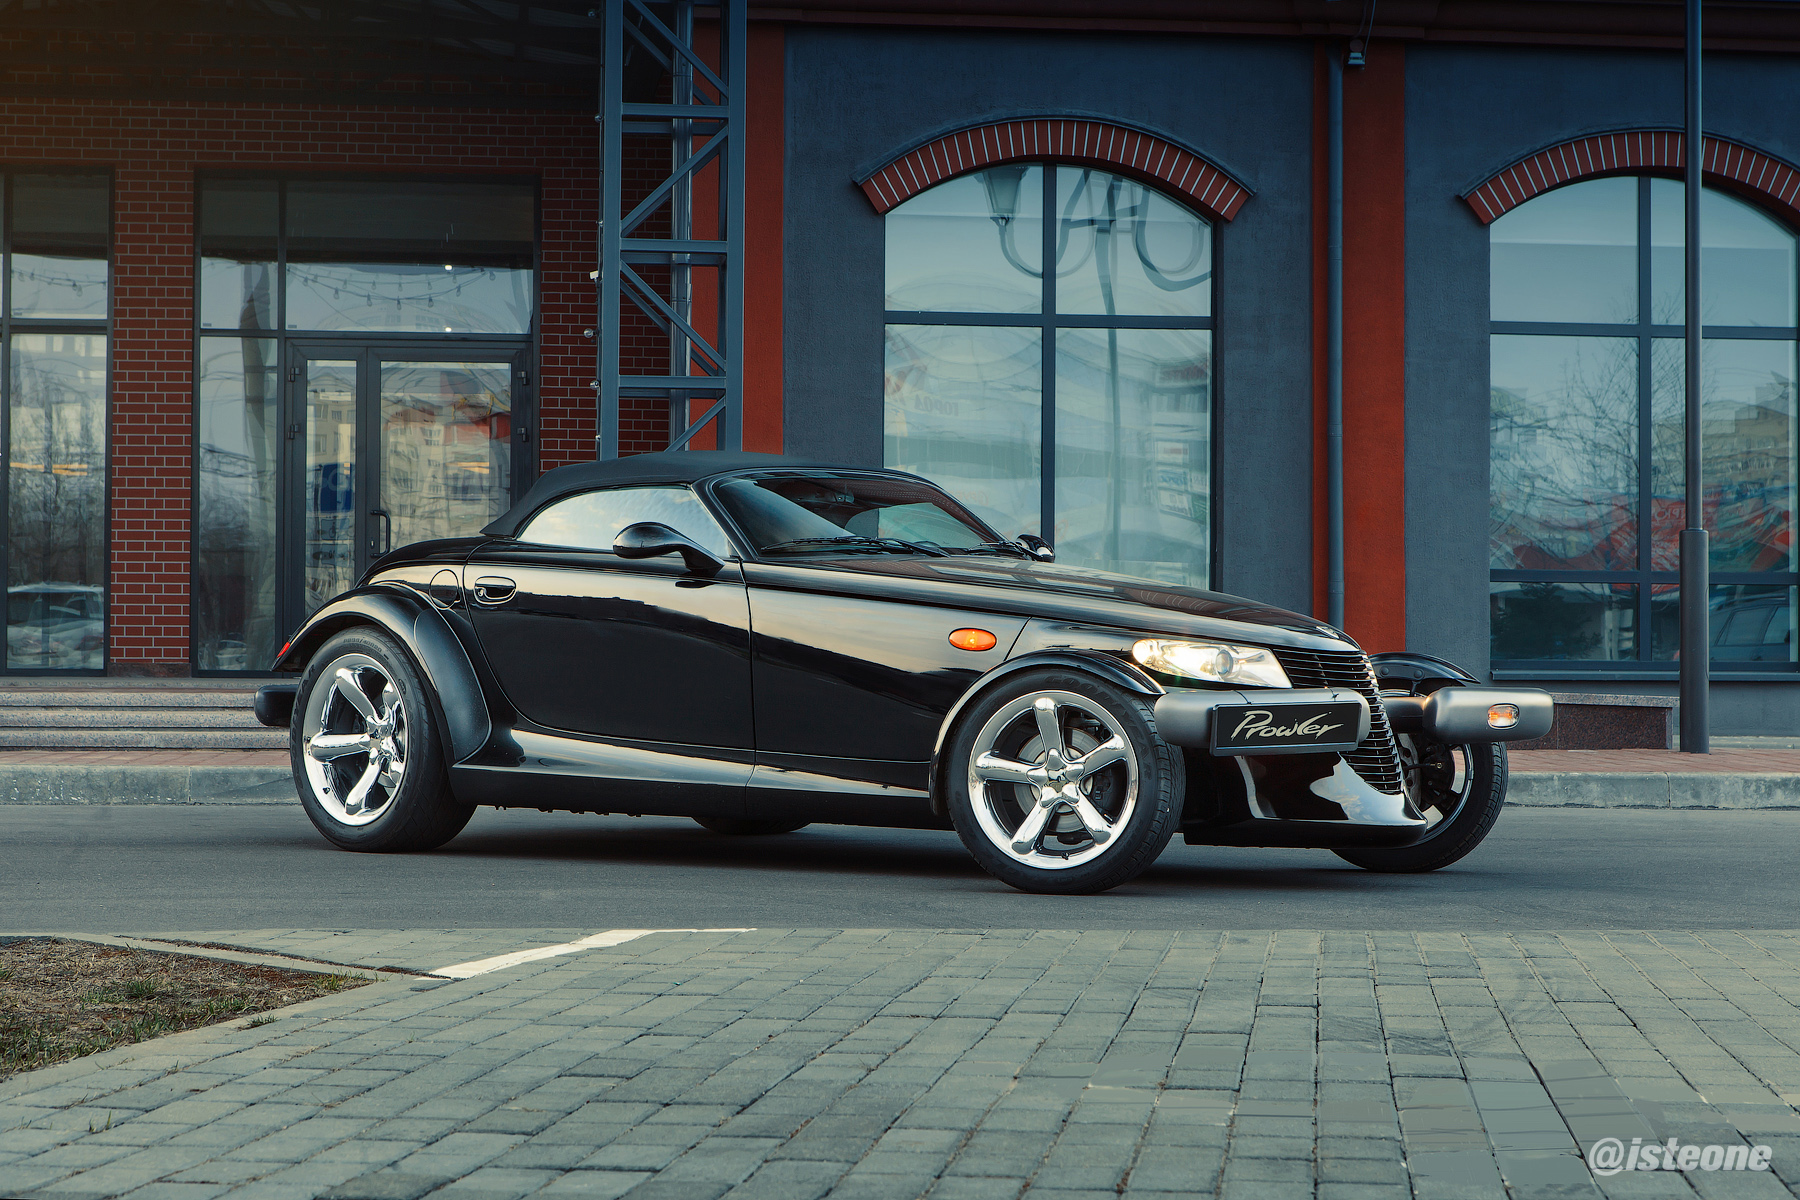 prowler3